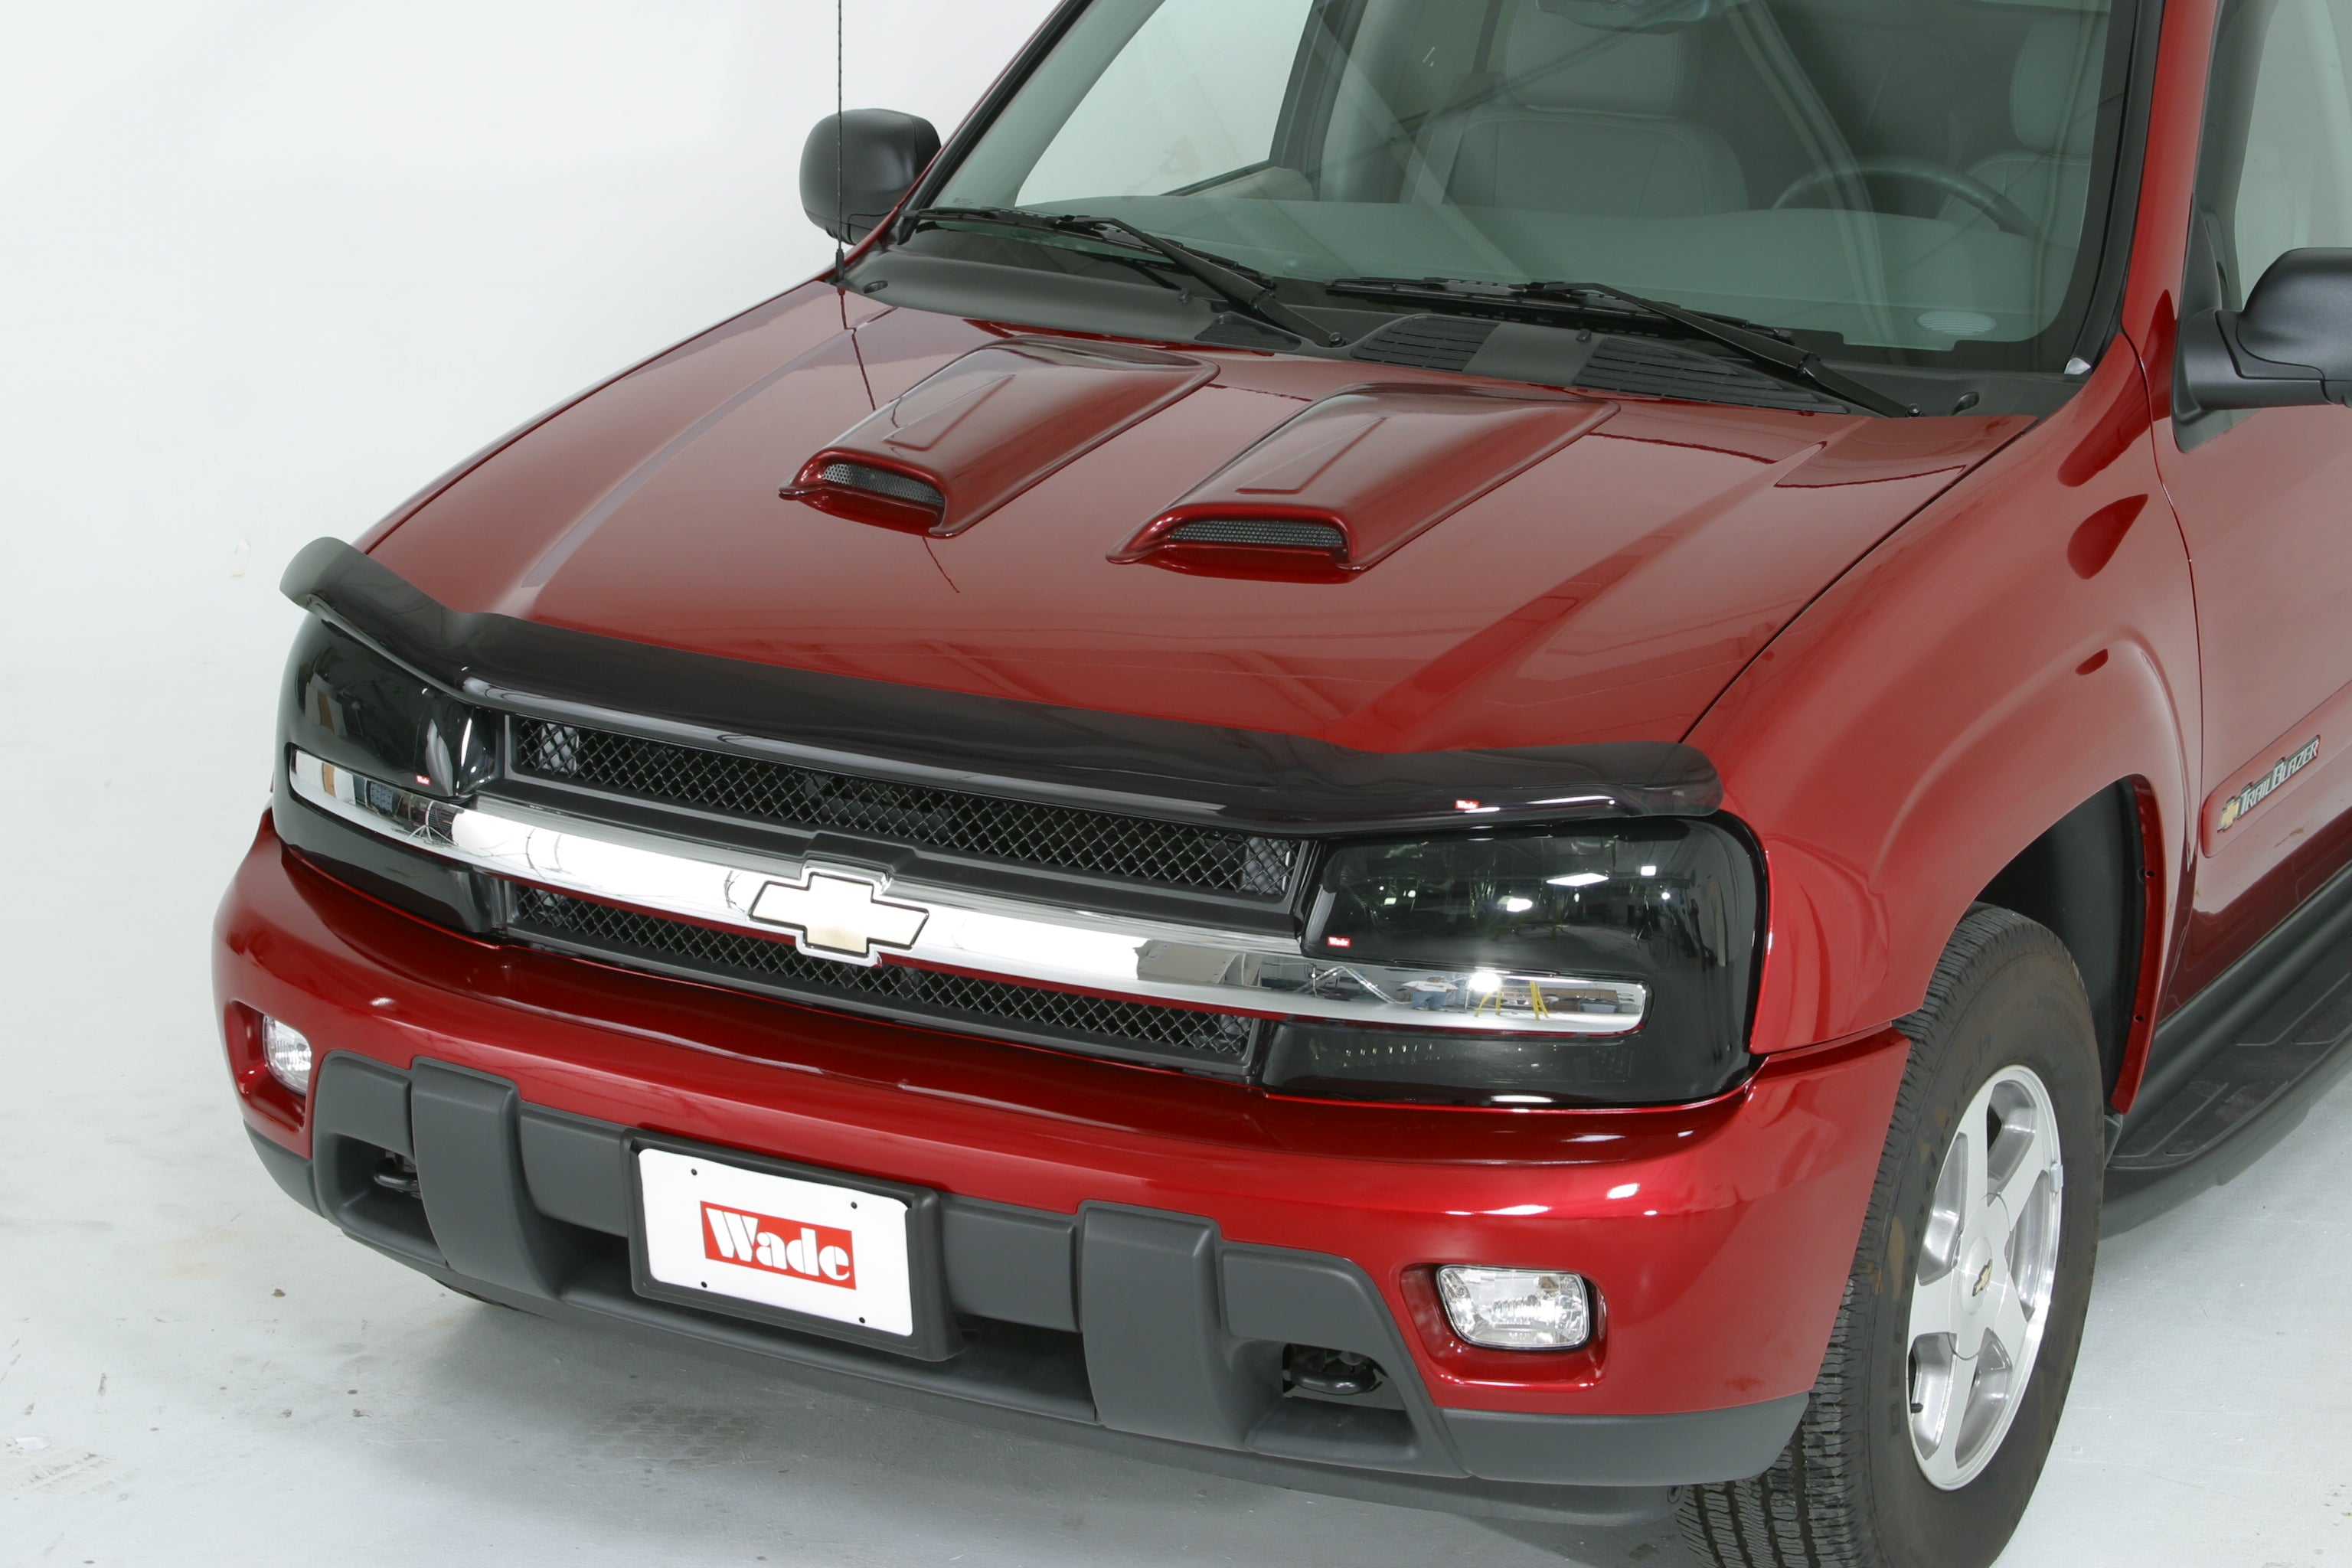 1992 Nissan Pickup 2WD (recessed light) Head Light Covers